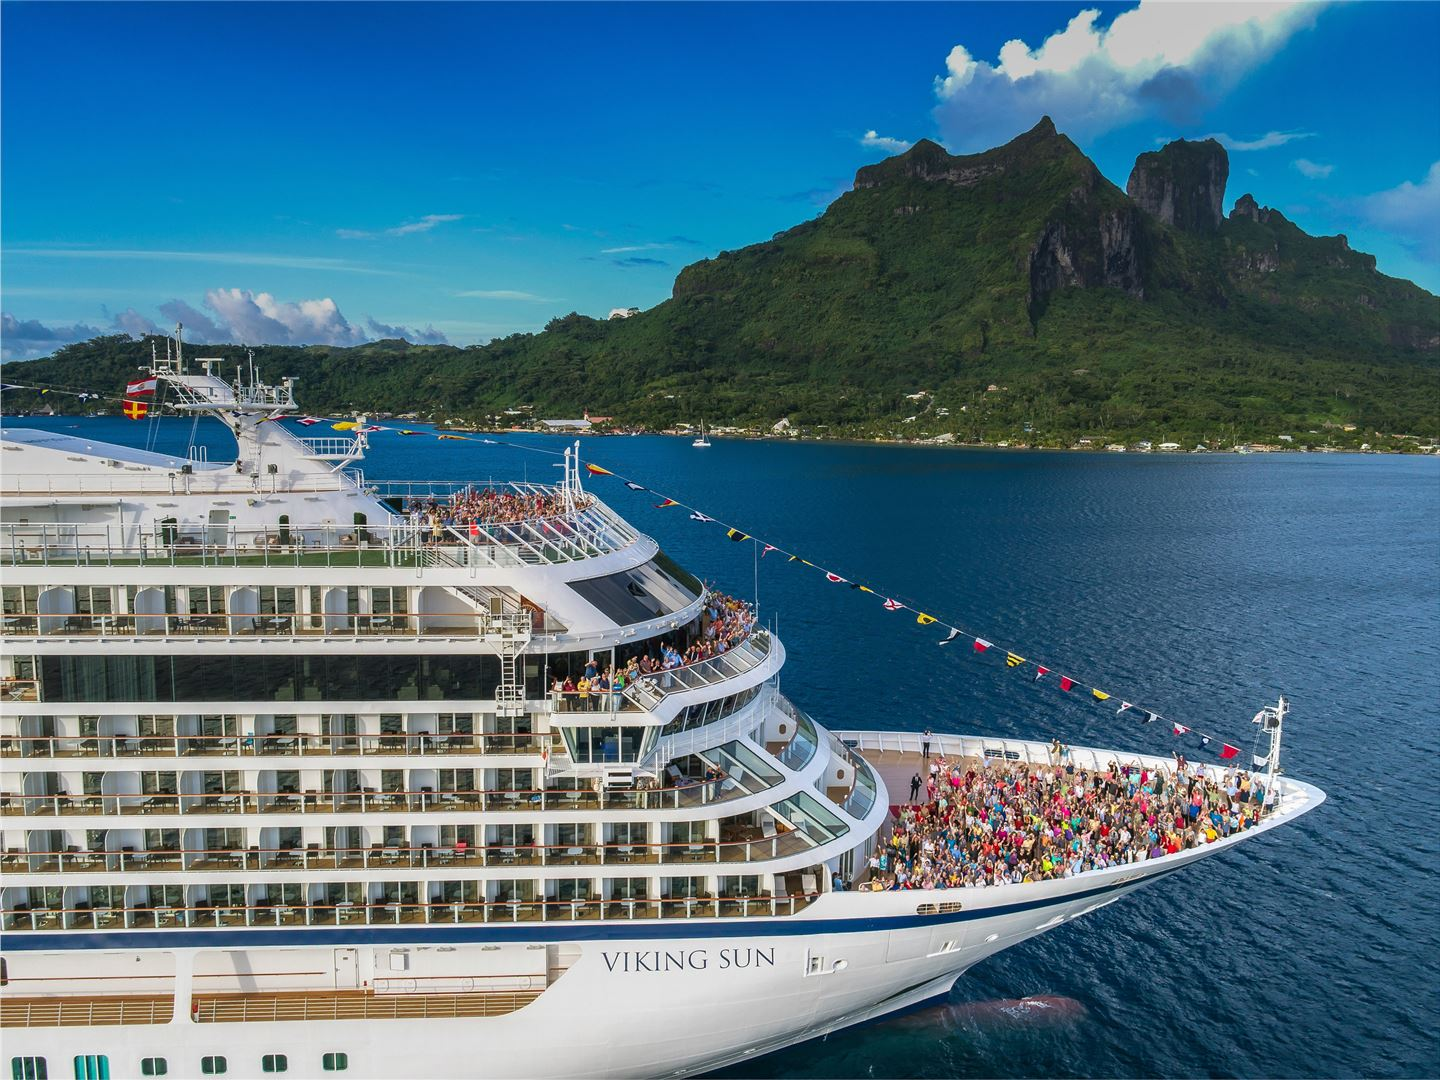 Viking Ocean Announces Itinerary, Dates for 2021 World Cruise